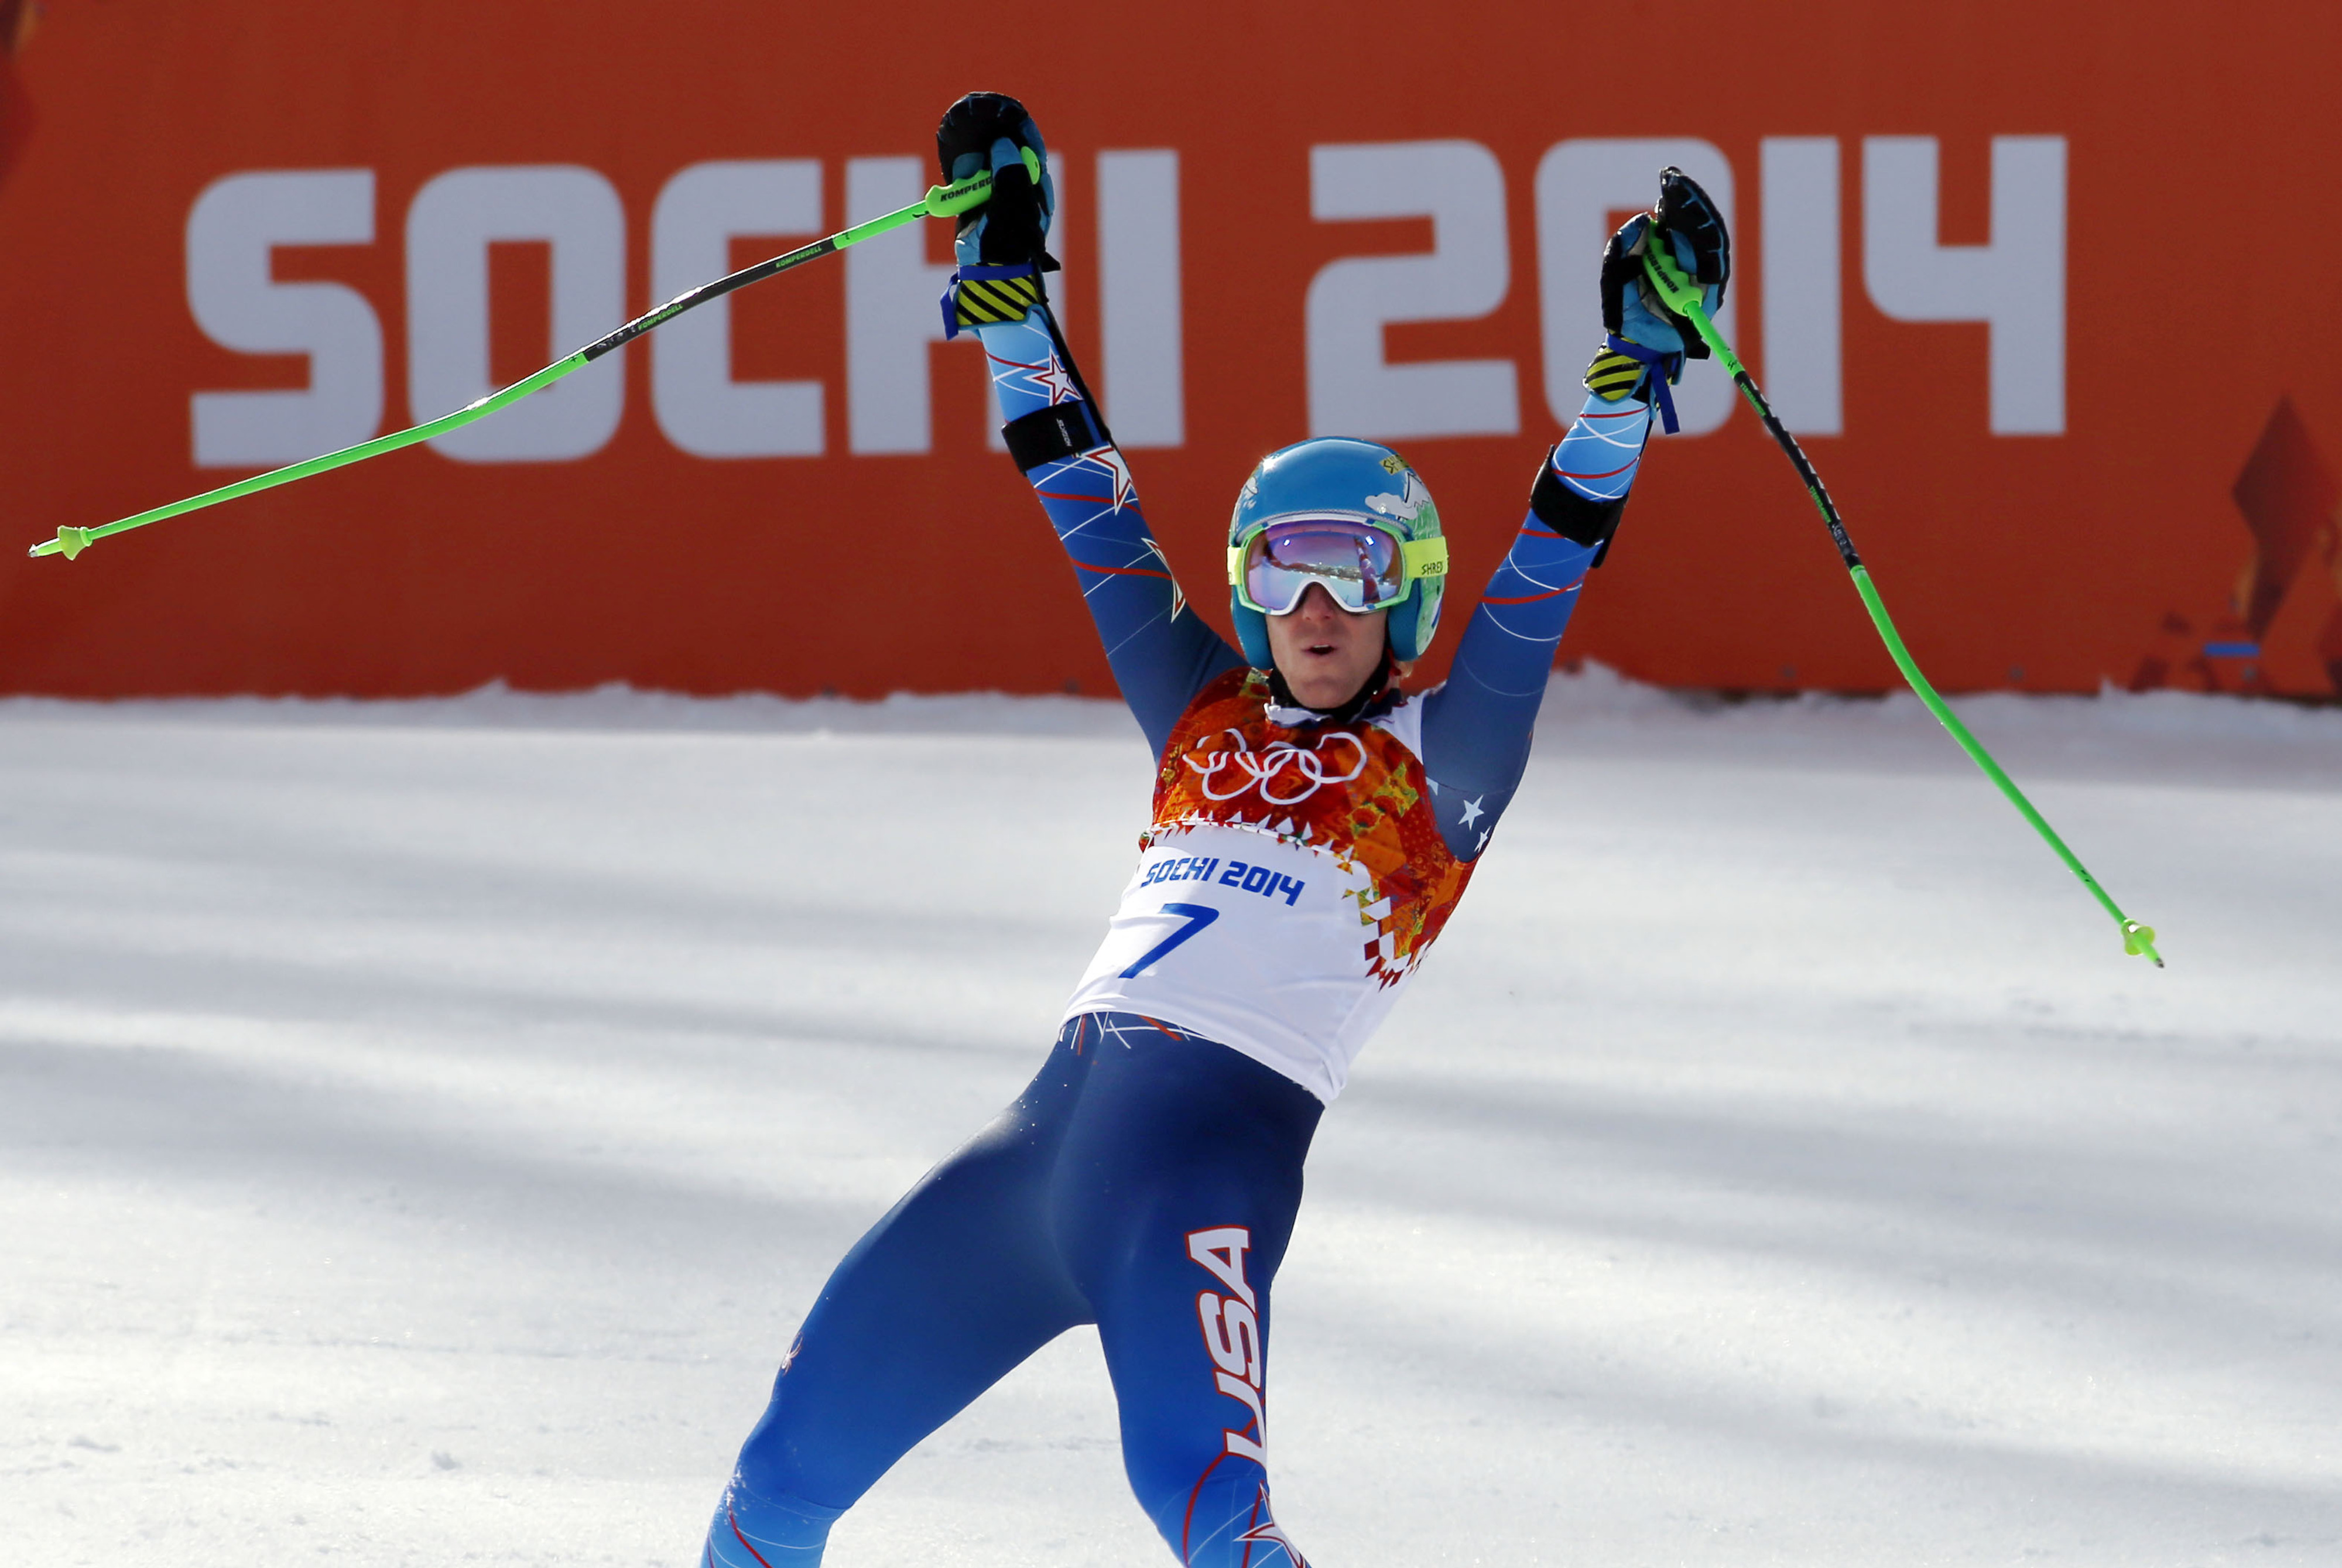 Ted Ligety, first two-time USA gold medalist in Alpine.